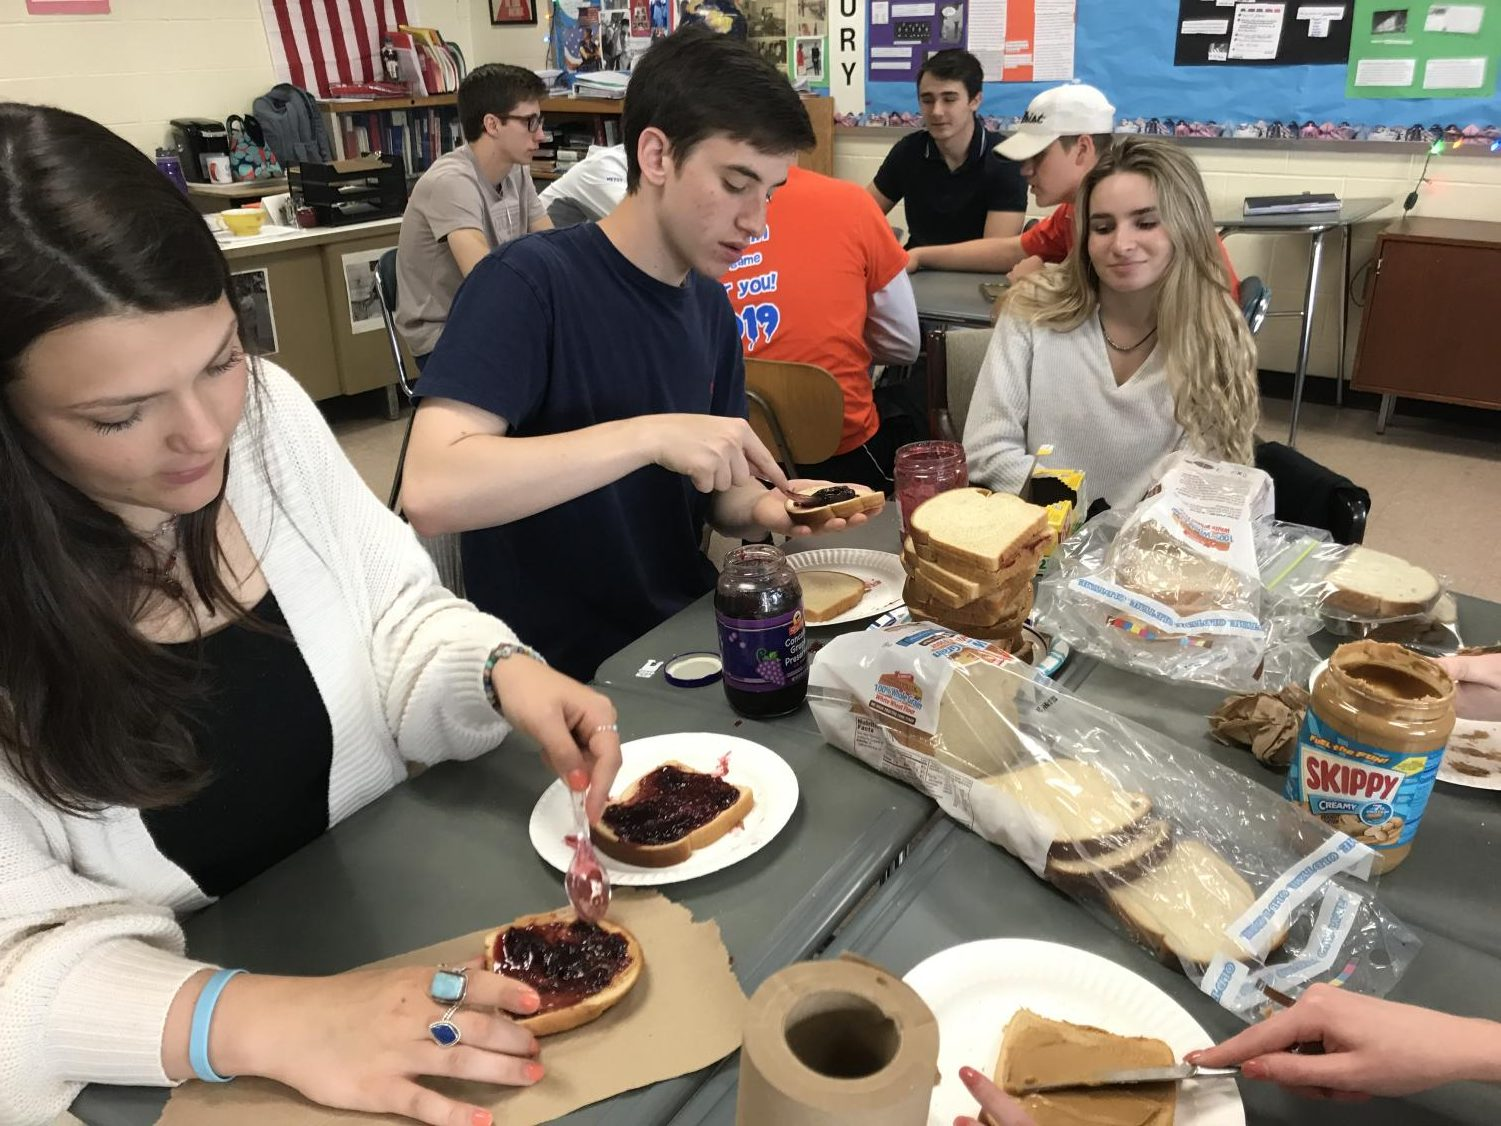 Mrs. Passarelli's Contemporary Issues class makes bagged lunches for a homeless shelter on Friday, May 17th.